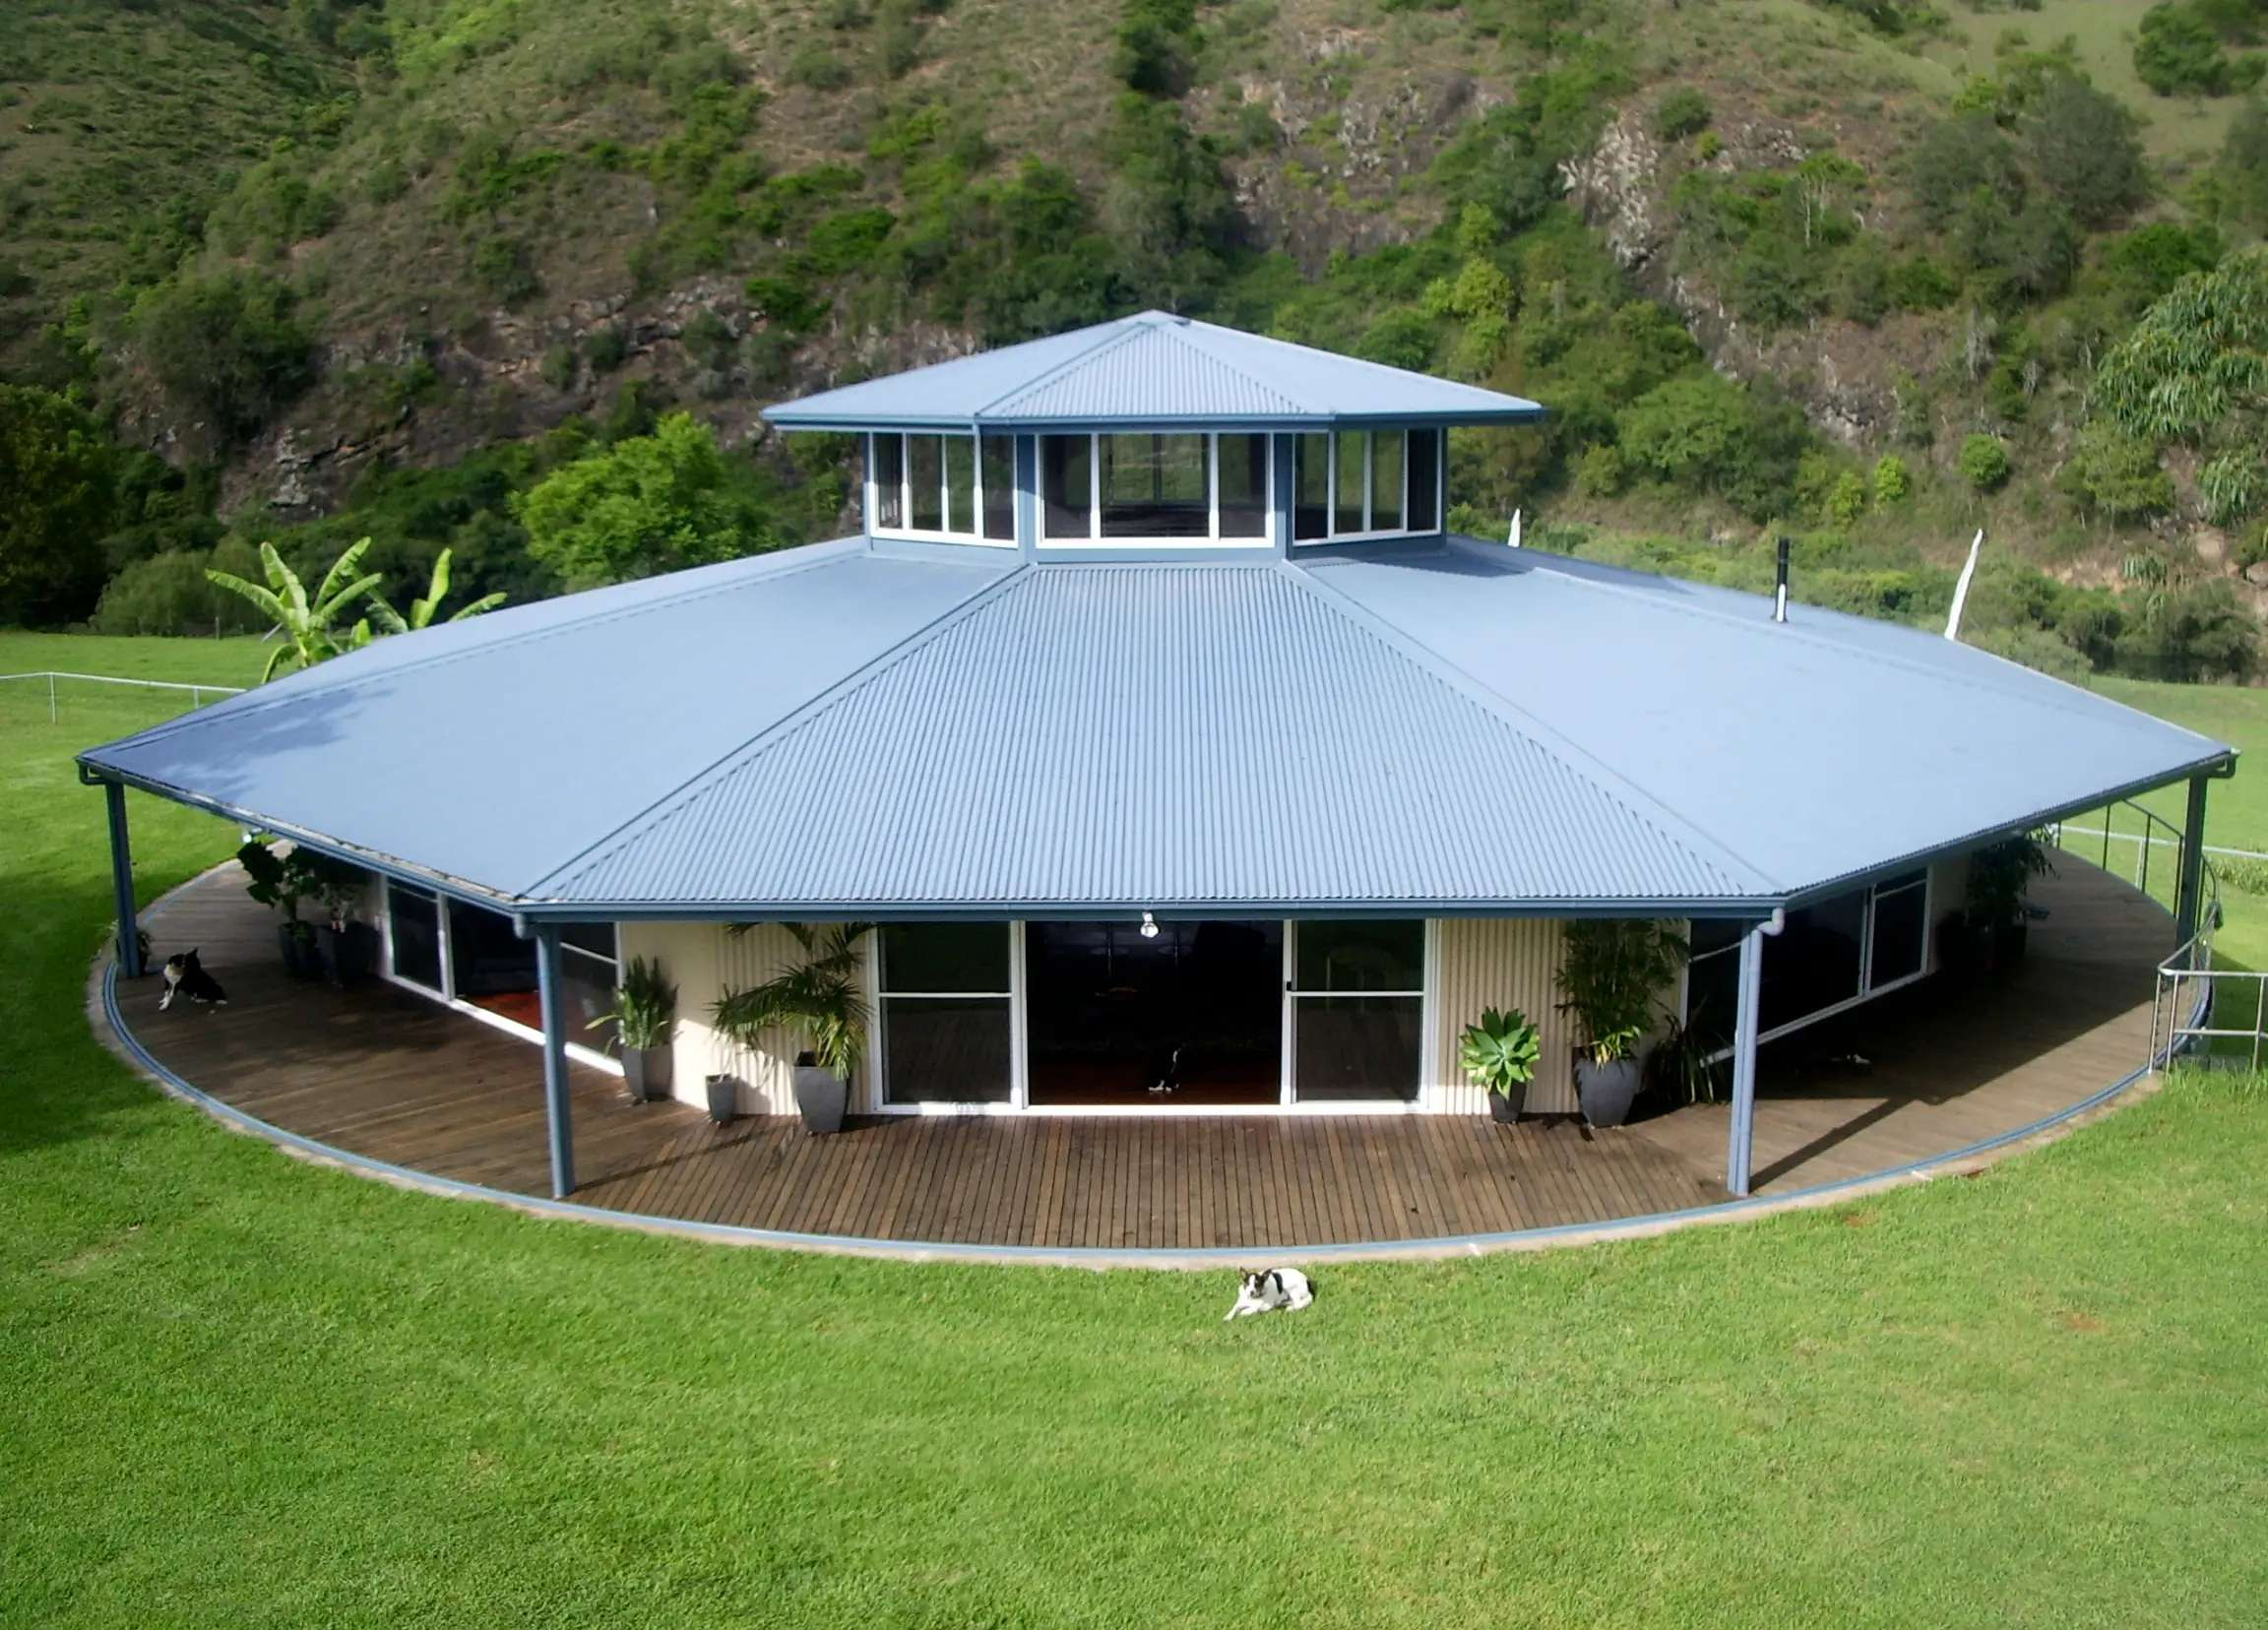 This three-bedroom, octagonal home was built on a rotating platform in Australia. The house cost $700,000 to construct, and makes a full rotation every 30 minutes.